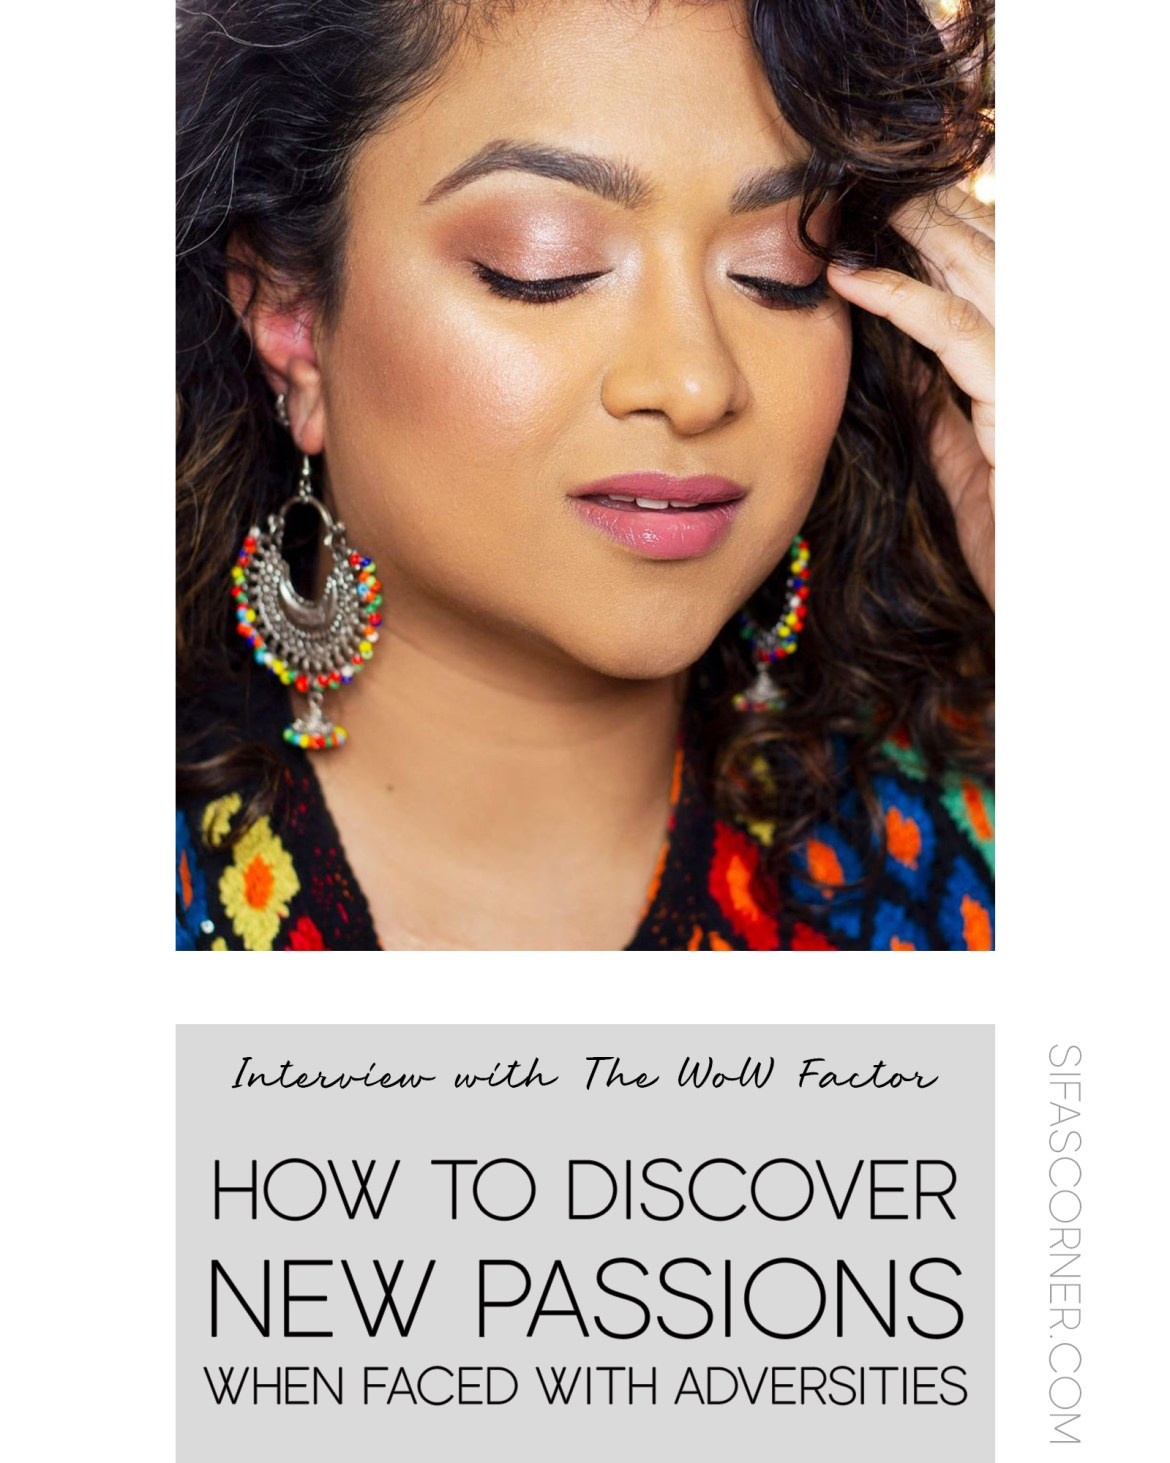 The Wow Factor-How to Discover new Passions When Faced With Adversities